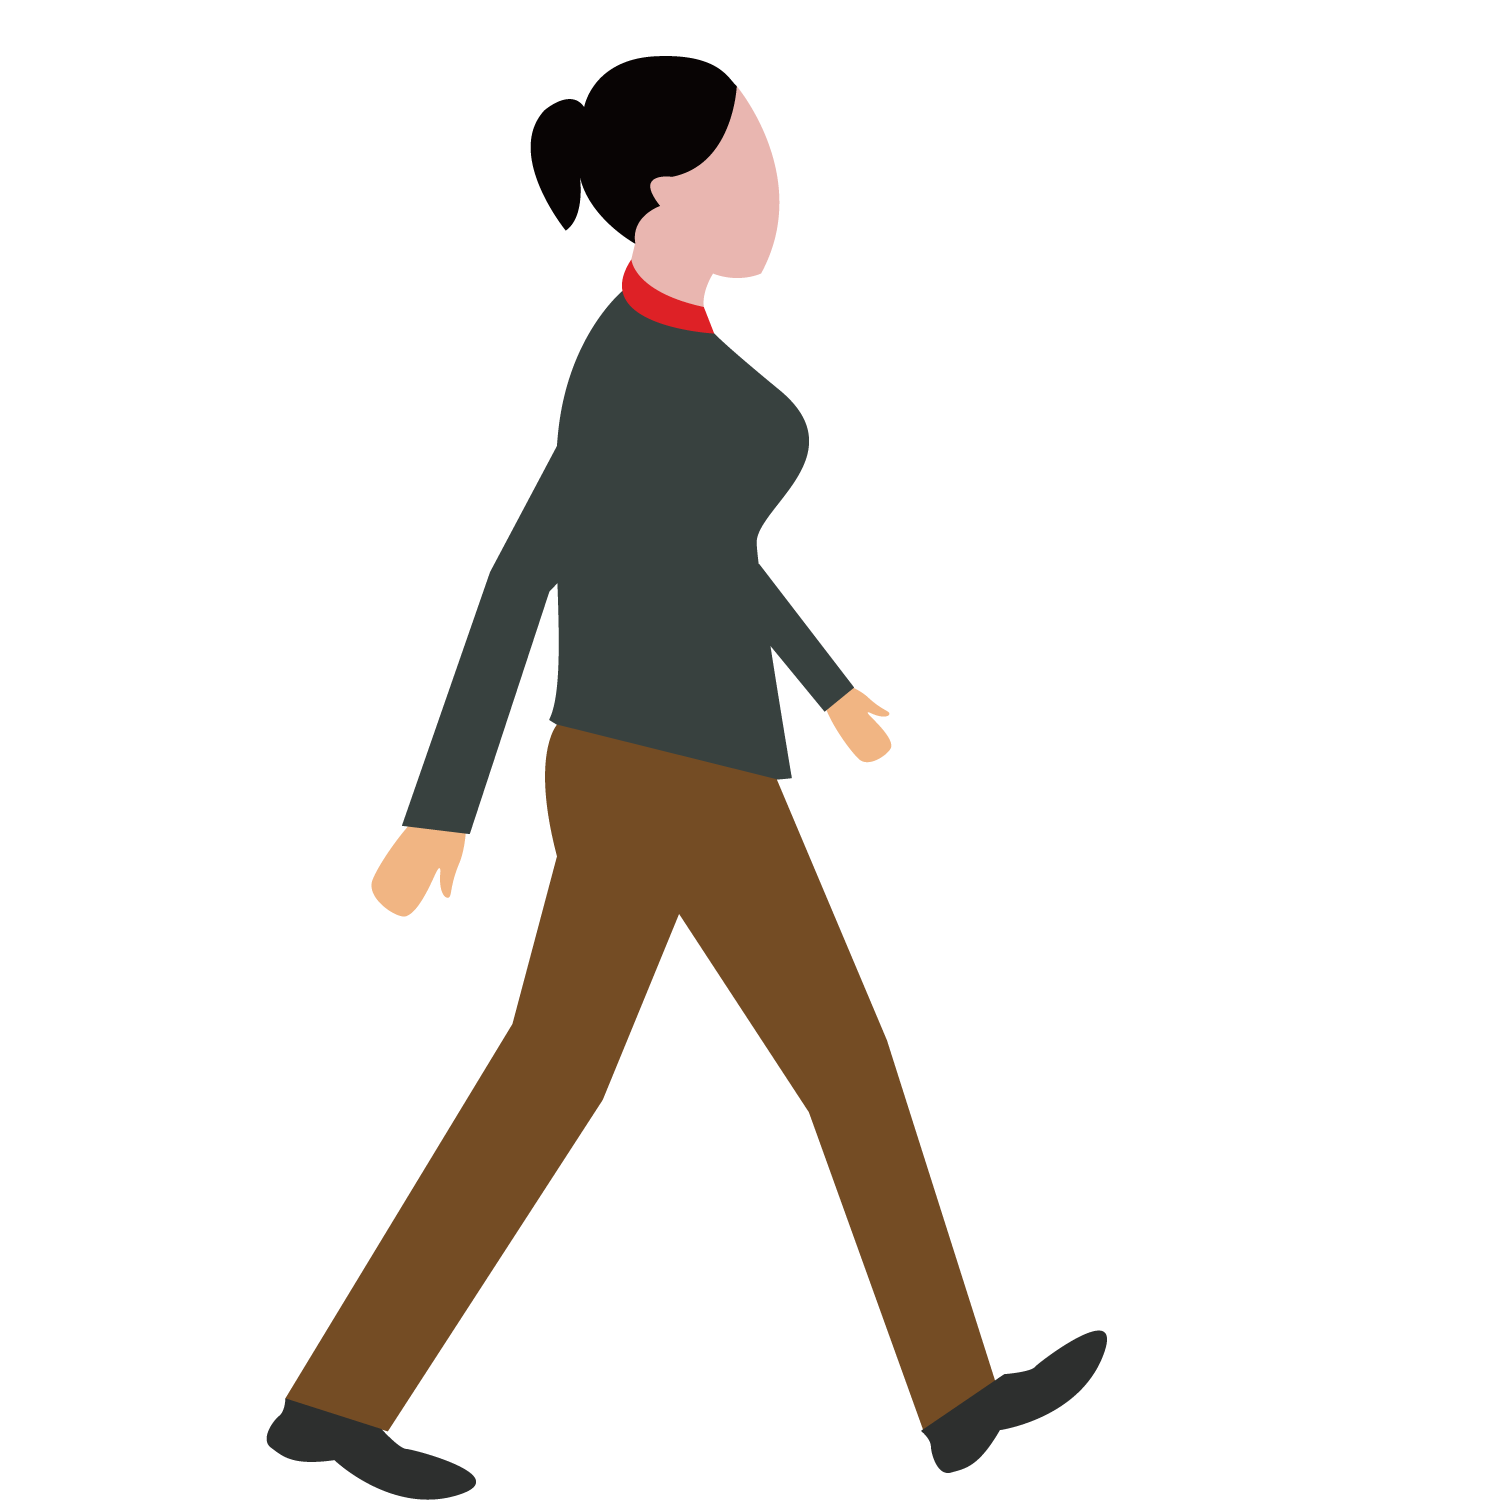 jpg library stock Girl walking dog clipart. Woman transprent png free